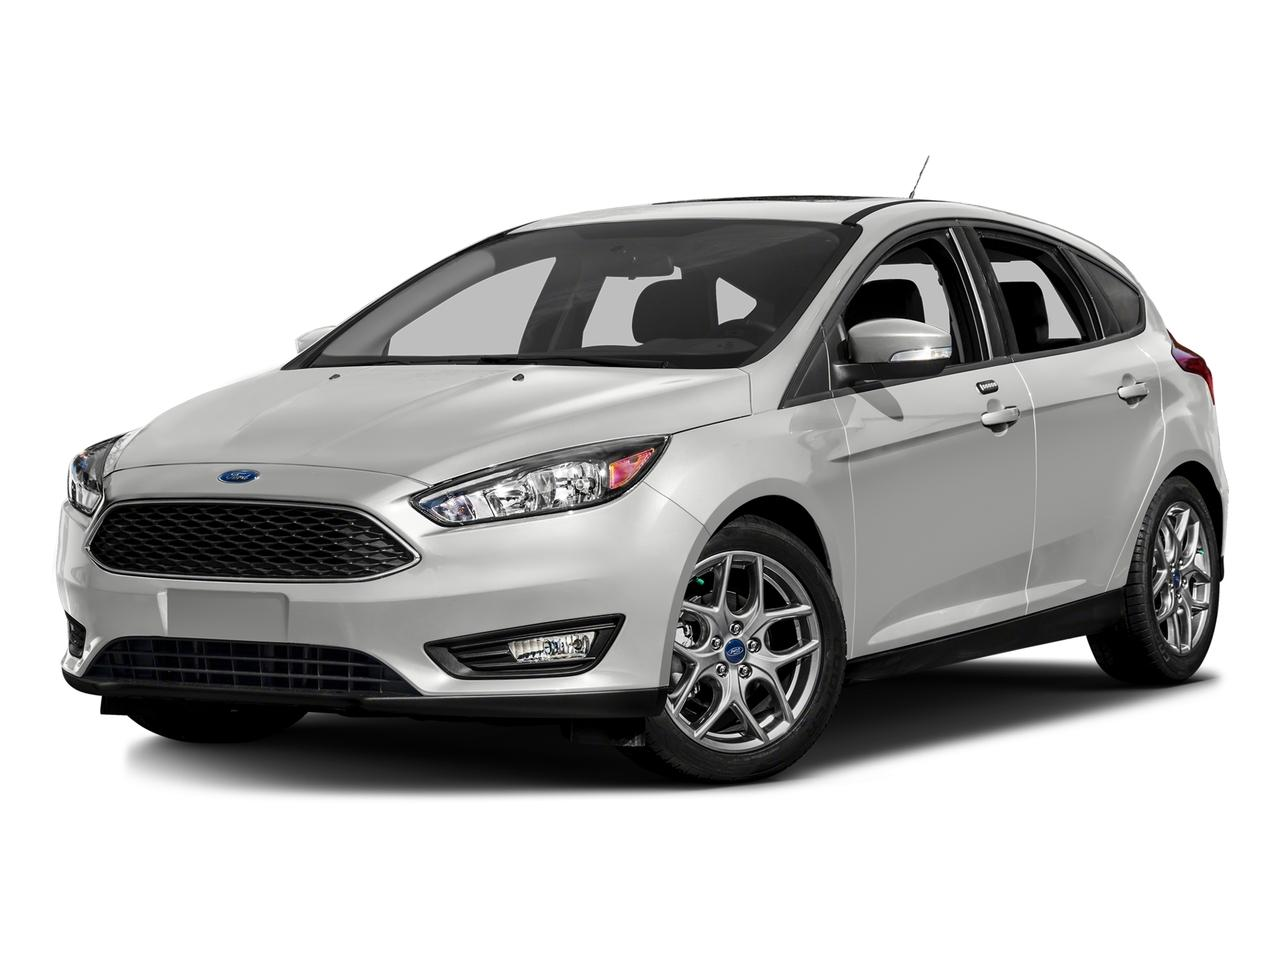 2016 Ford Focus Vehicle Photo in Owensboro, KY 42303